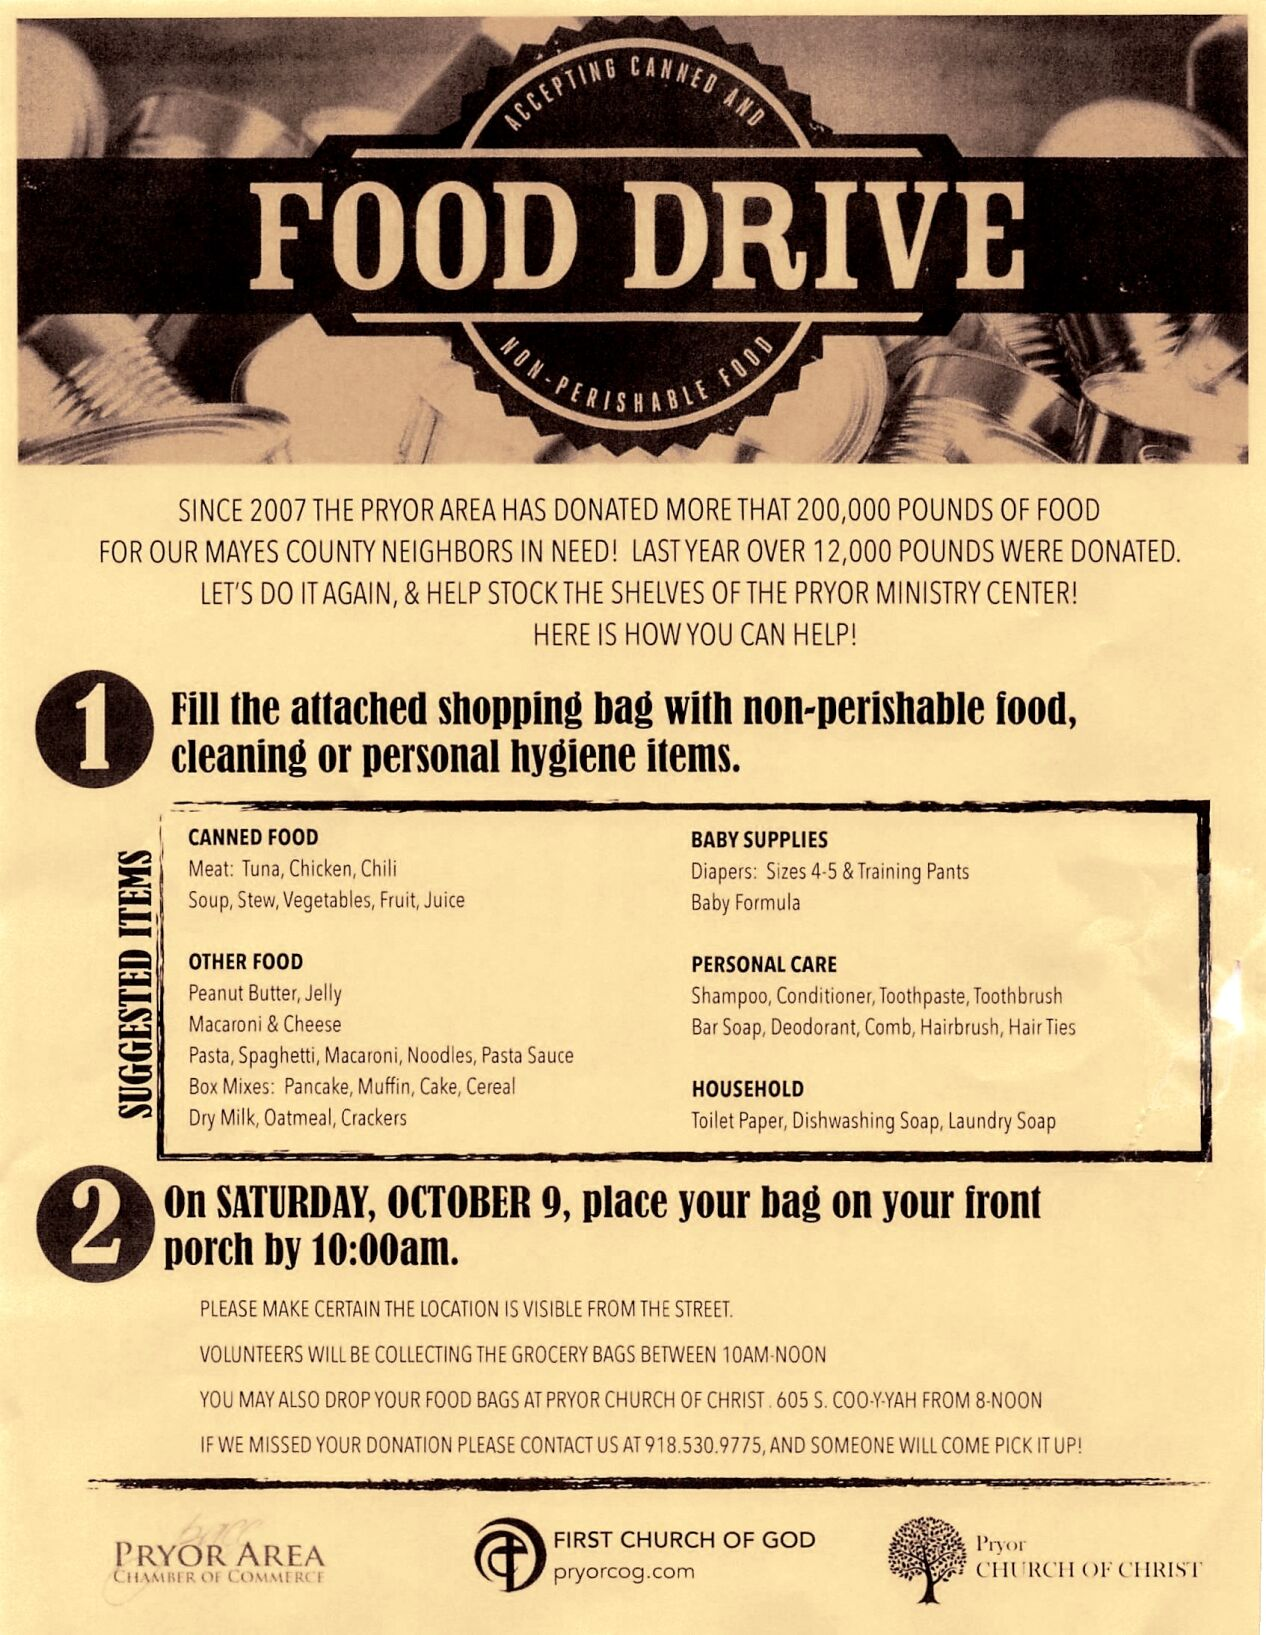 Why Great Days of Service Food Drive Matters